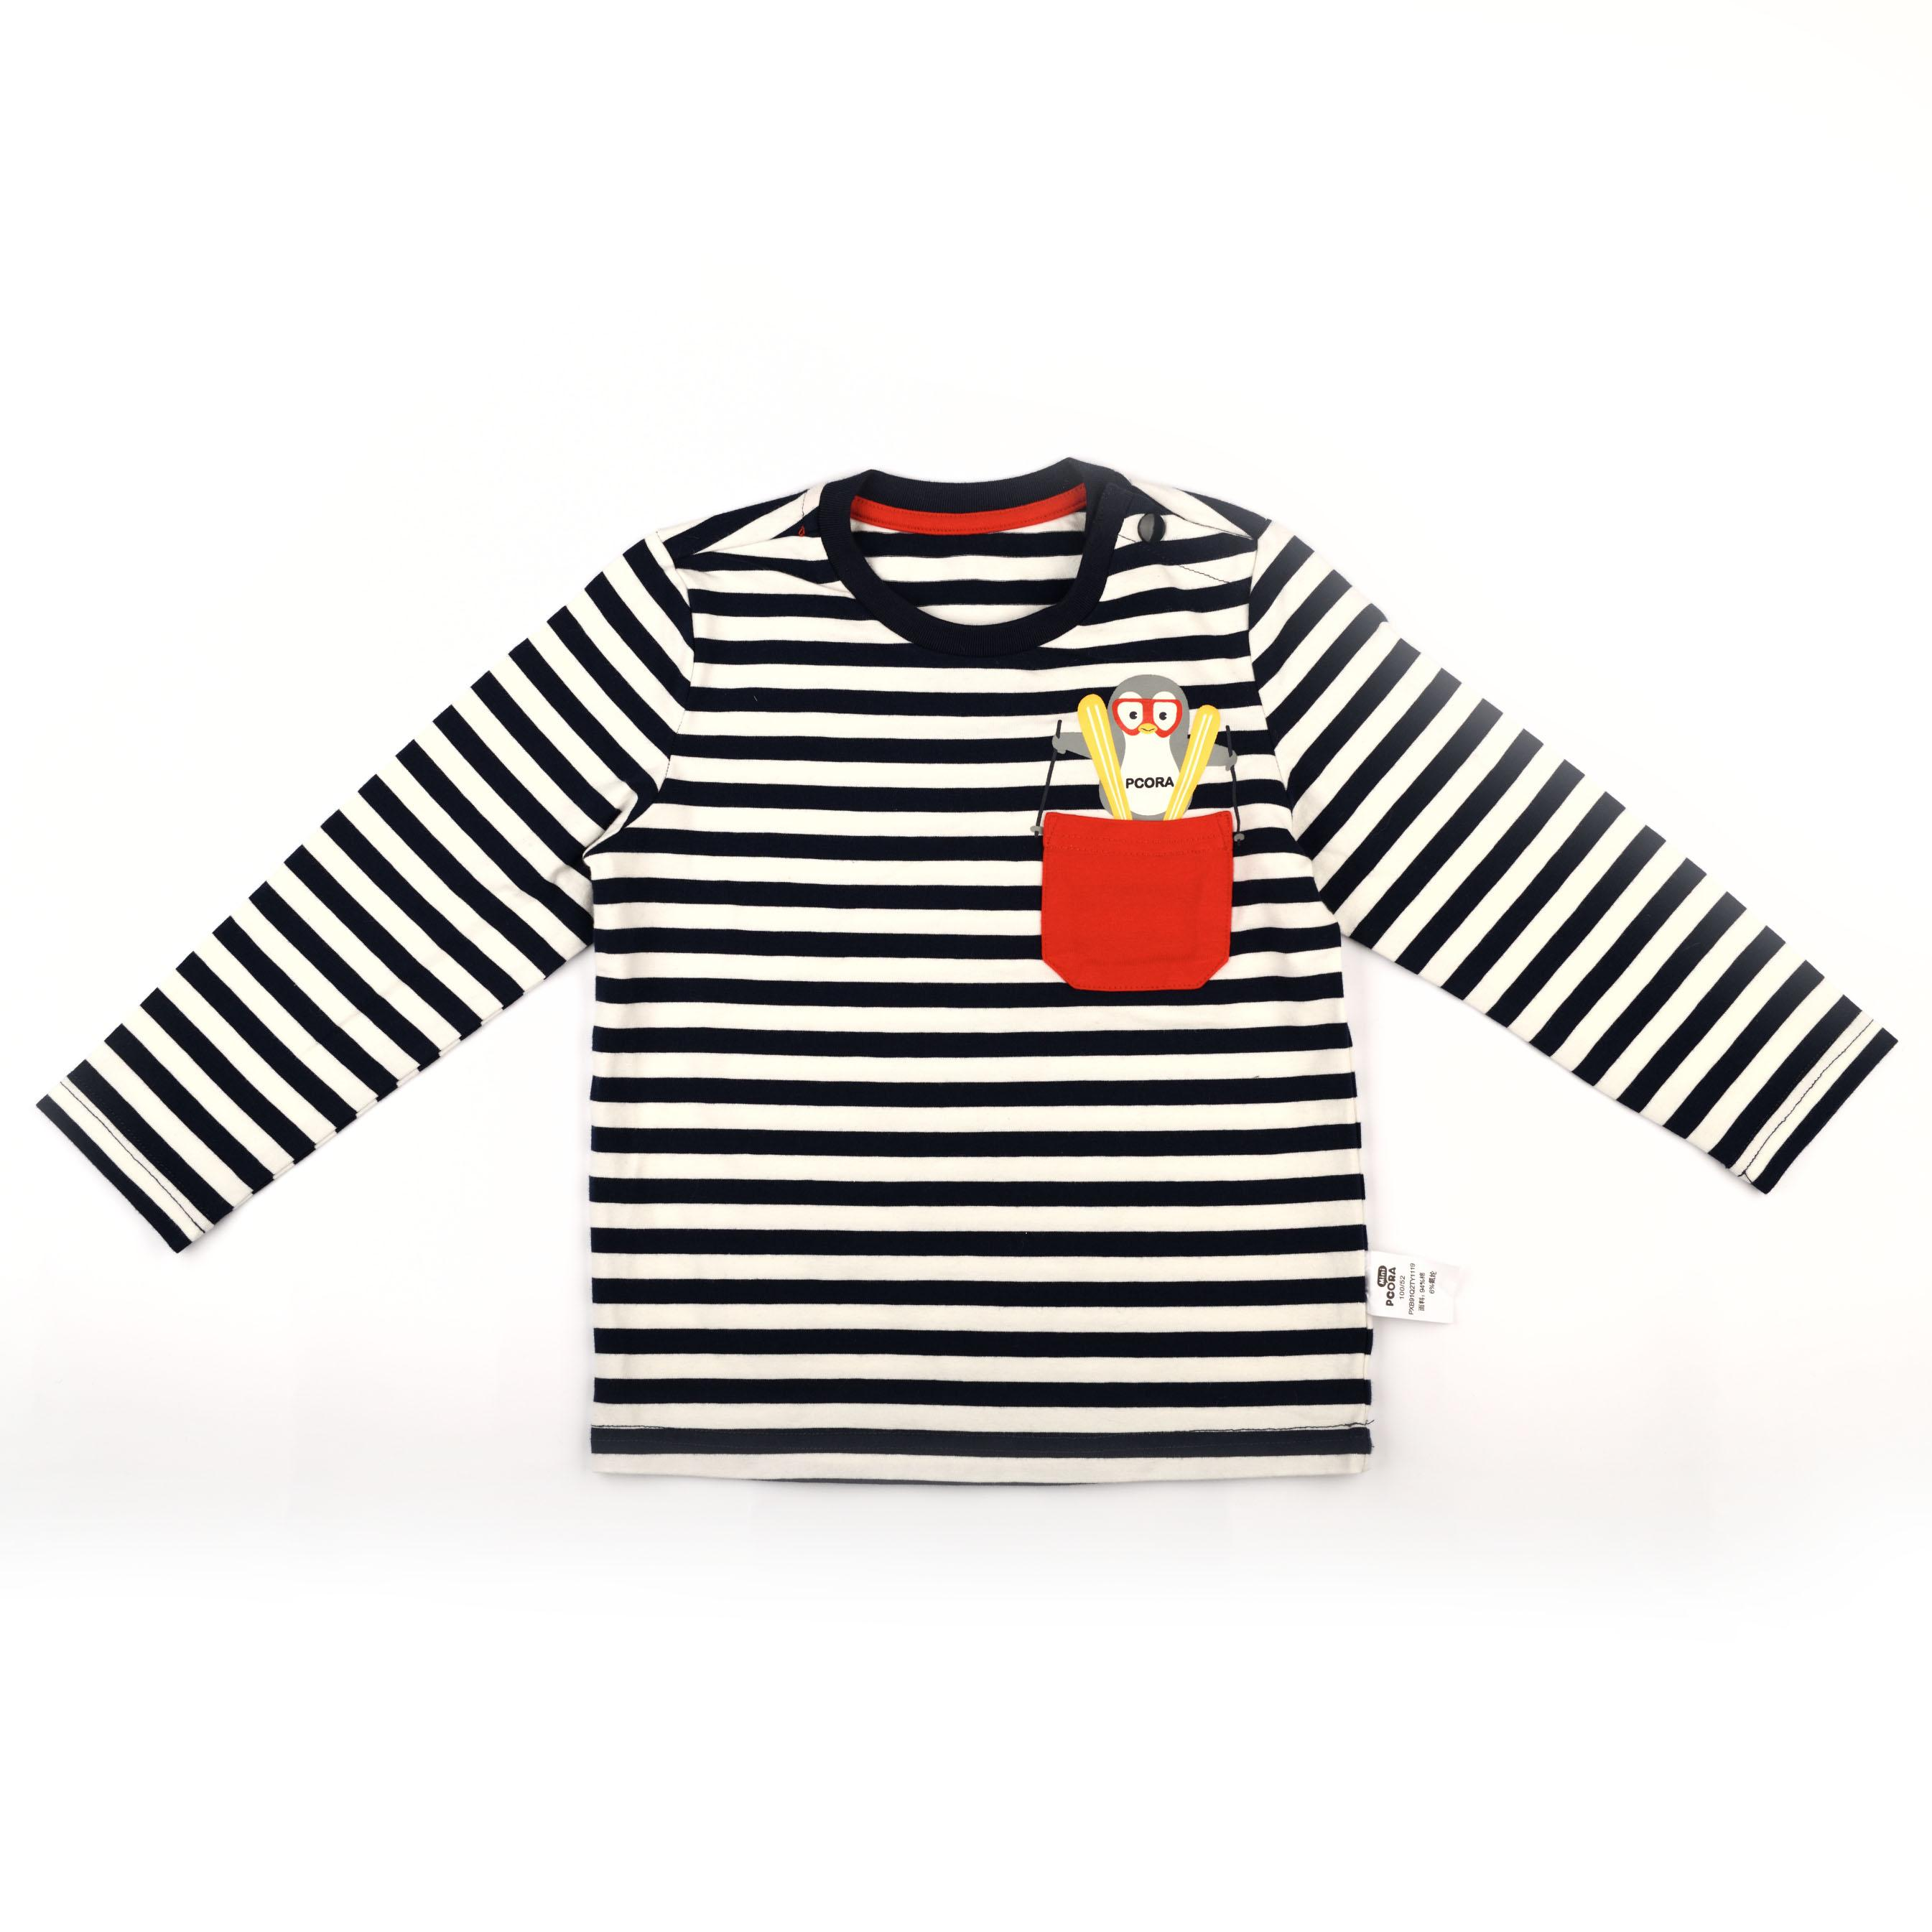 Children's clothing 2020 new spring and autumn T-shirts